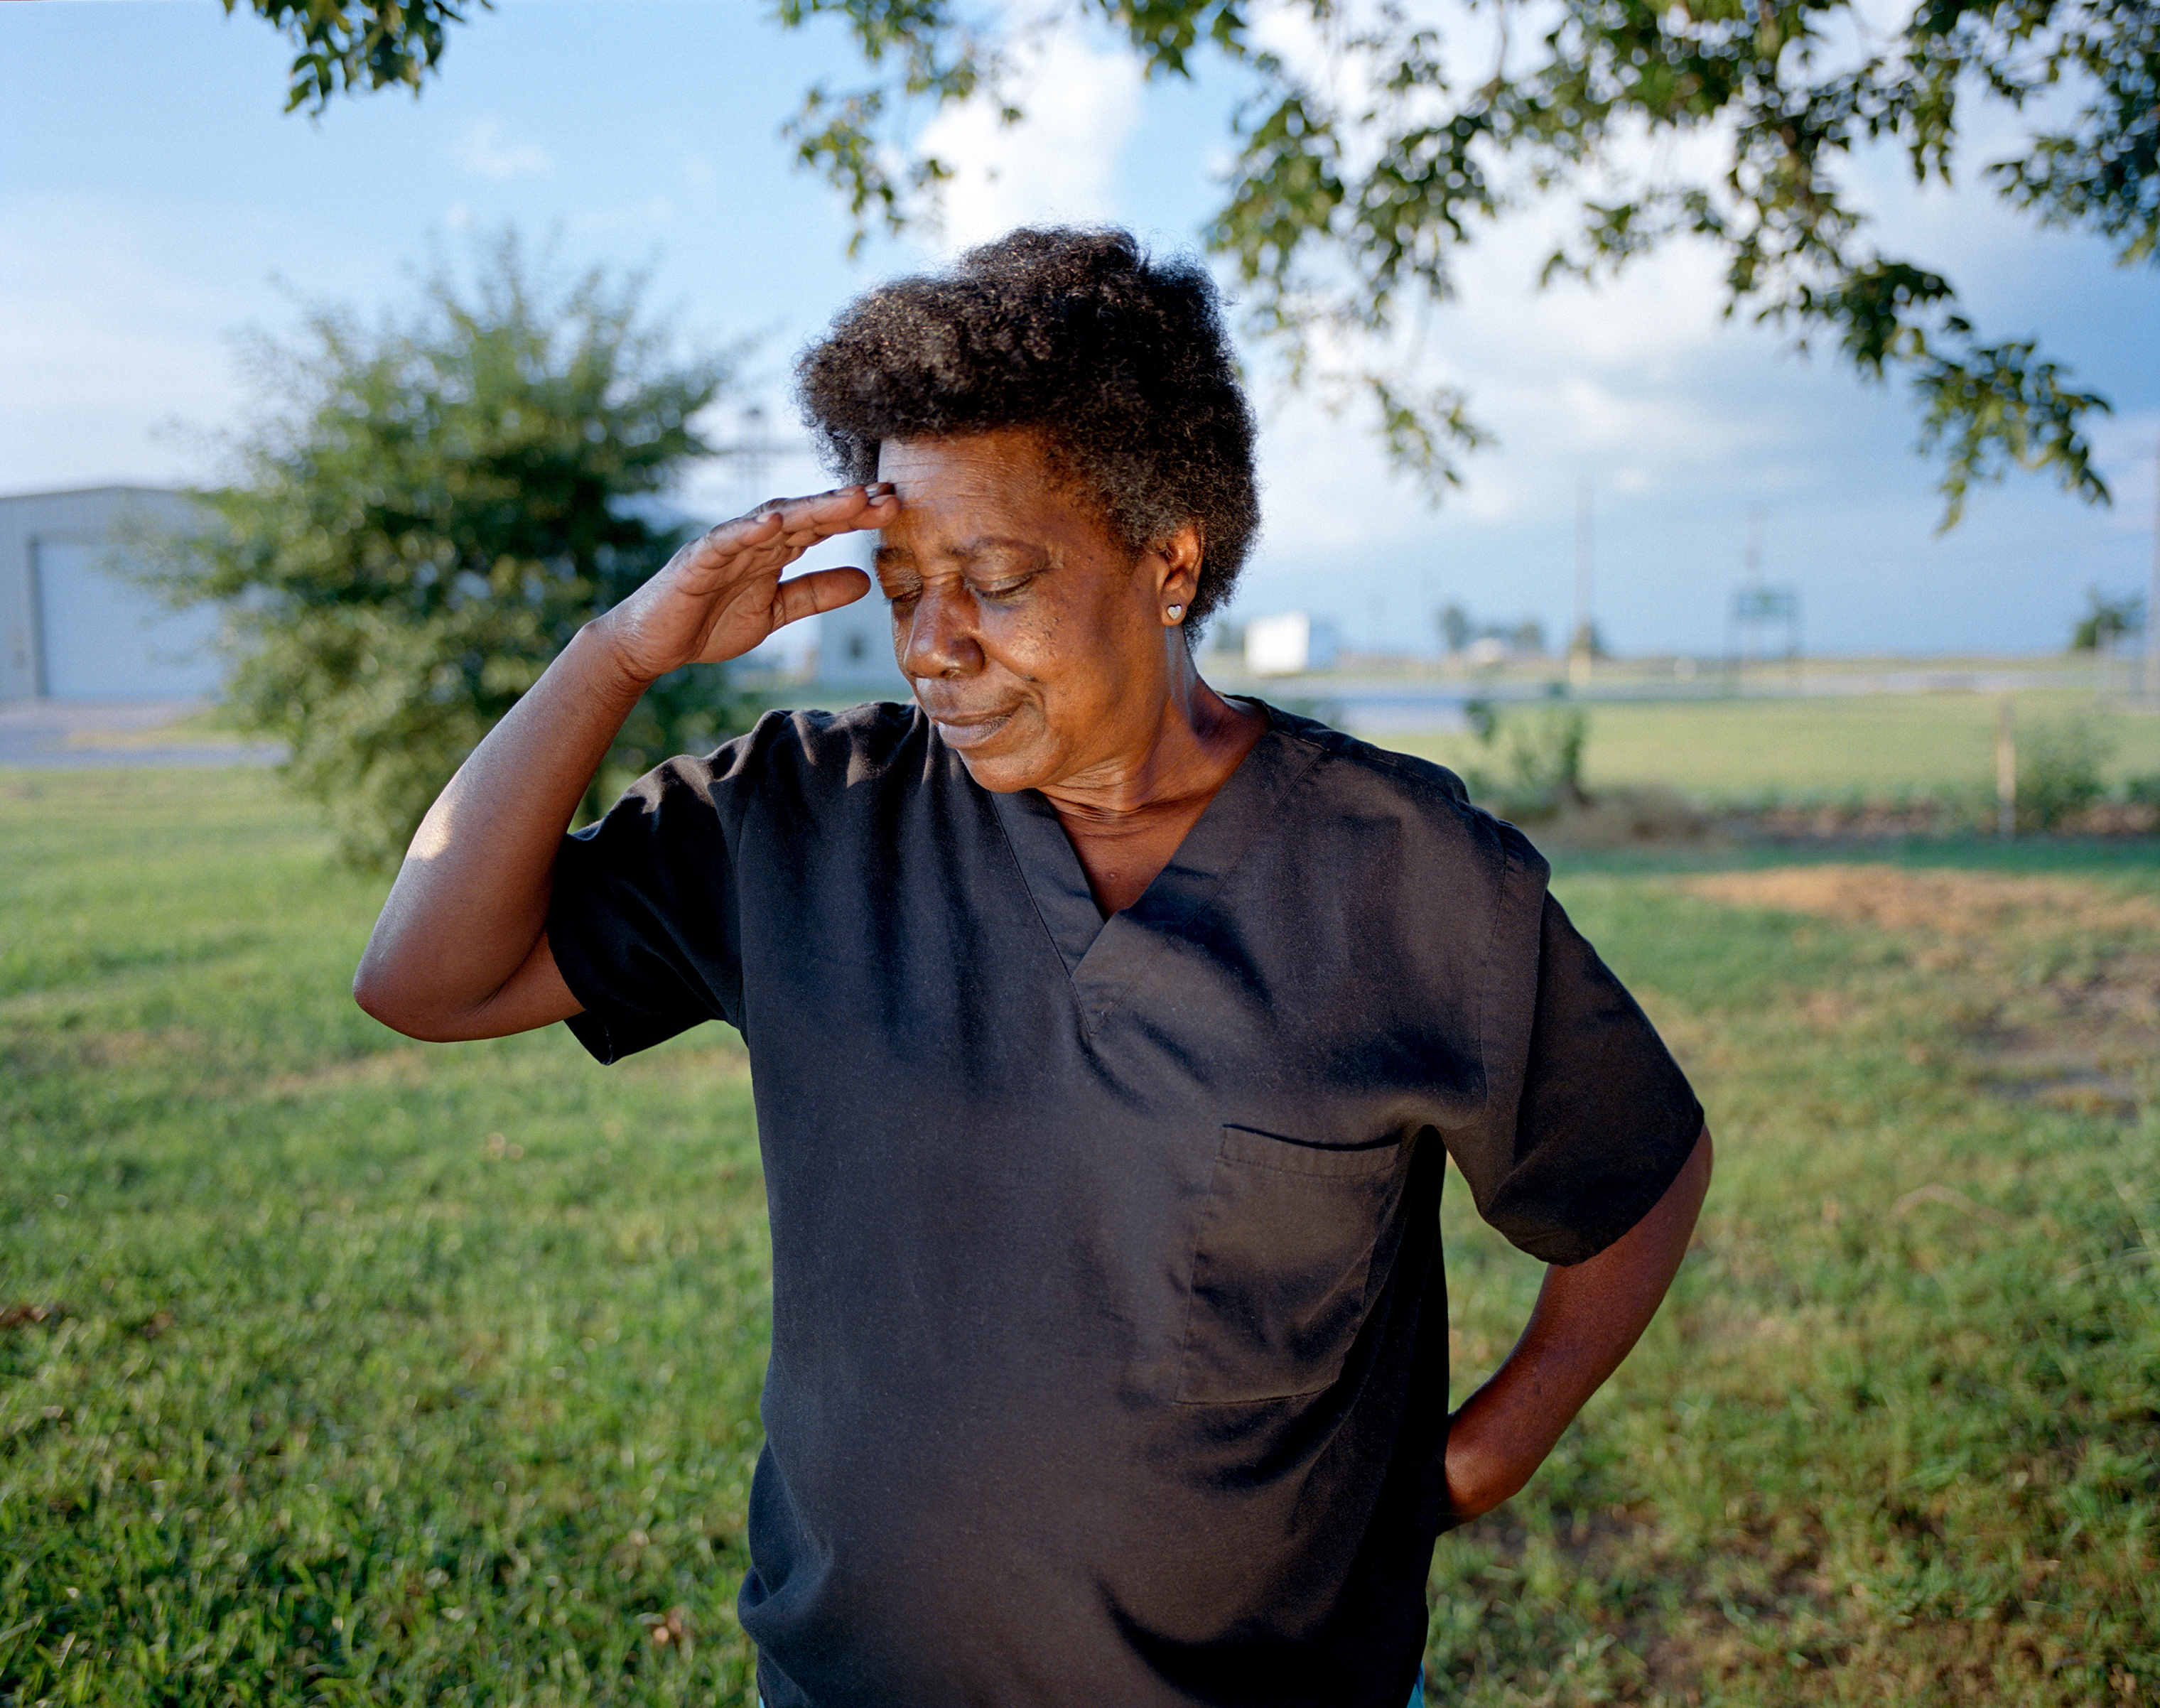 Ora Scaife reflects on the atrocities committed during the 1919 Race Massacre in Philips County, Ark., in which over 200 African Americans were murdered within a three-day span. Scaife and her family have lived in Phillips County for generations. But specific stories surrounding the massacre were not passed down. When she was a child, Scaife's family would whisper at the kitchen table about the massacre and send her back to bed if she was caught listening.